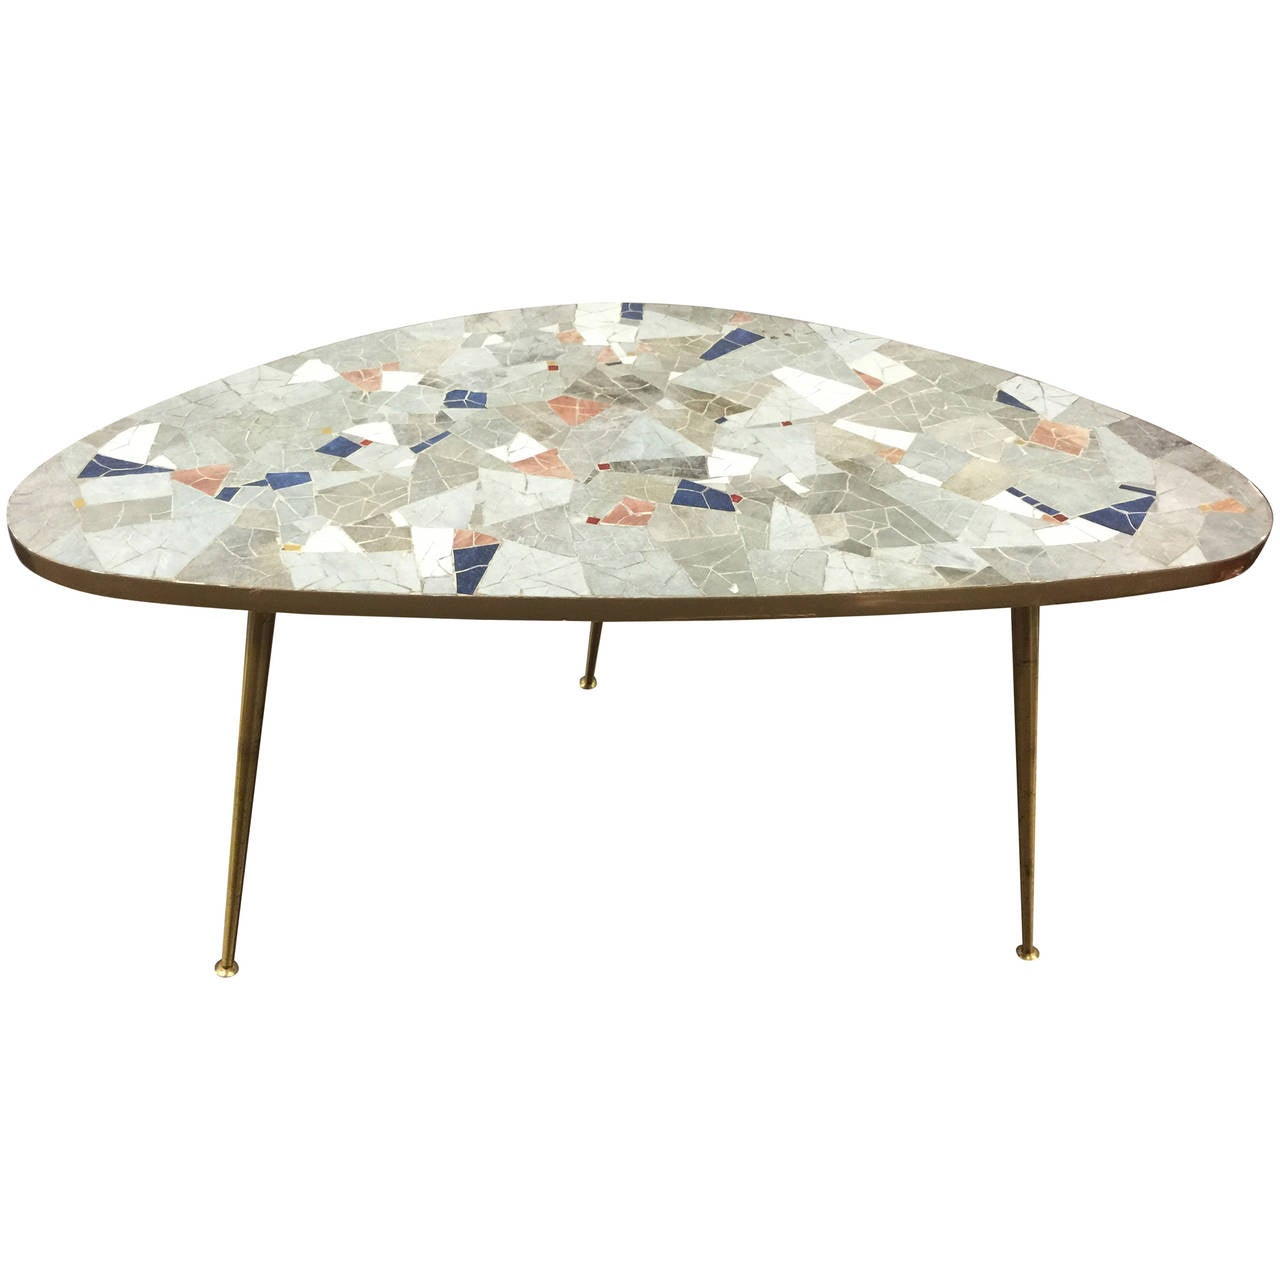 Paloma Mosaic Coffee Table: A Midcentury Kidney Shaped Mosaic Tile Table In The Manner